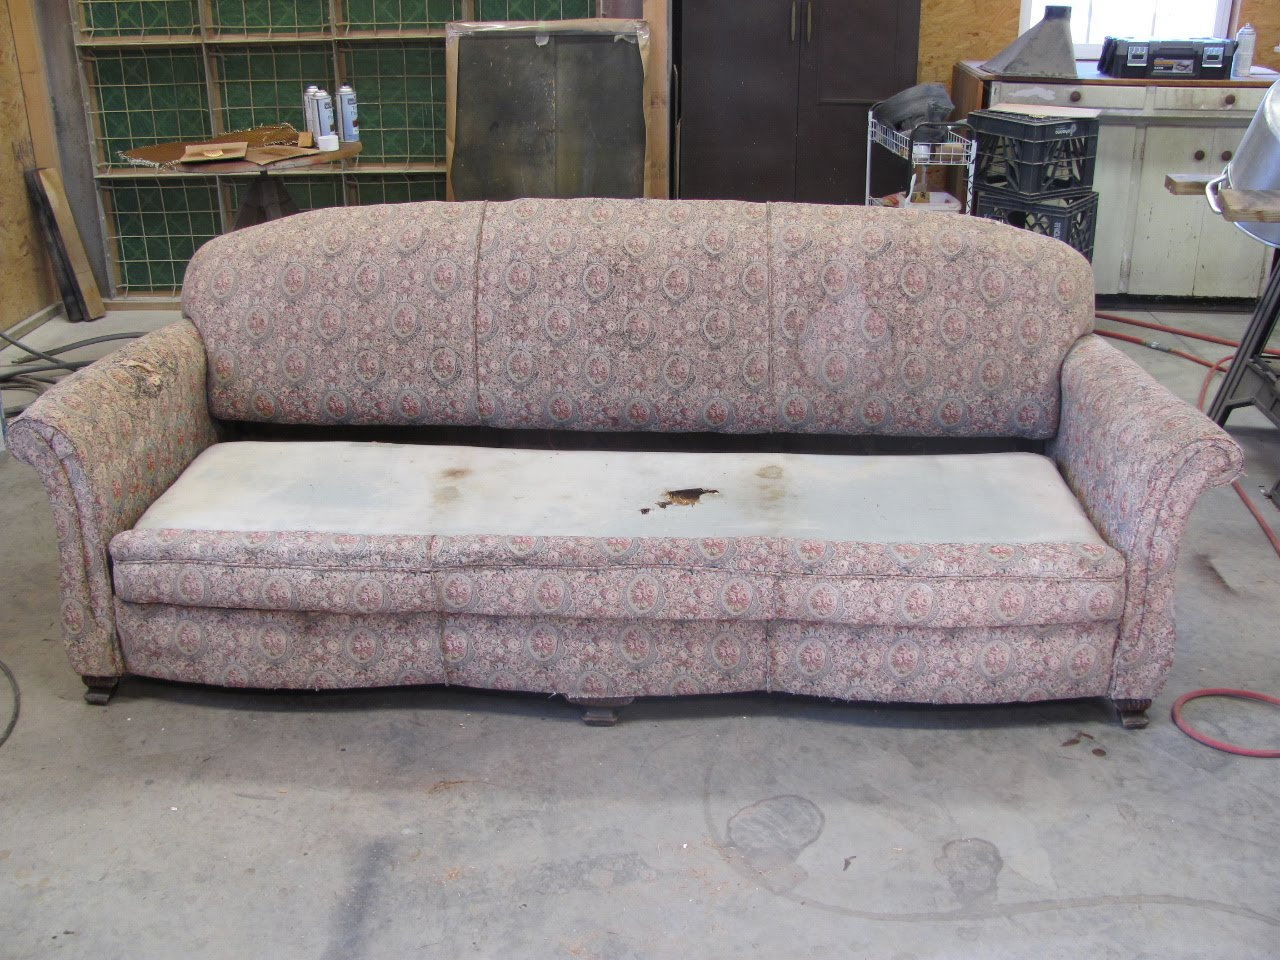 Sleeper Sofa Repair Pull Out Bed Deck